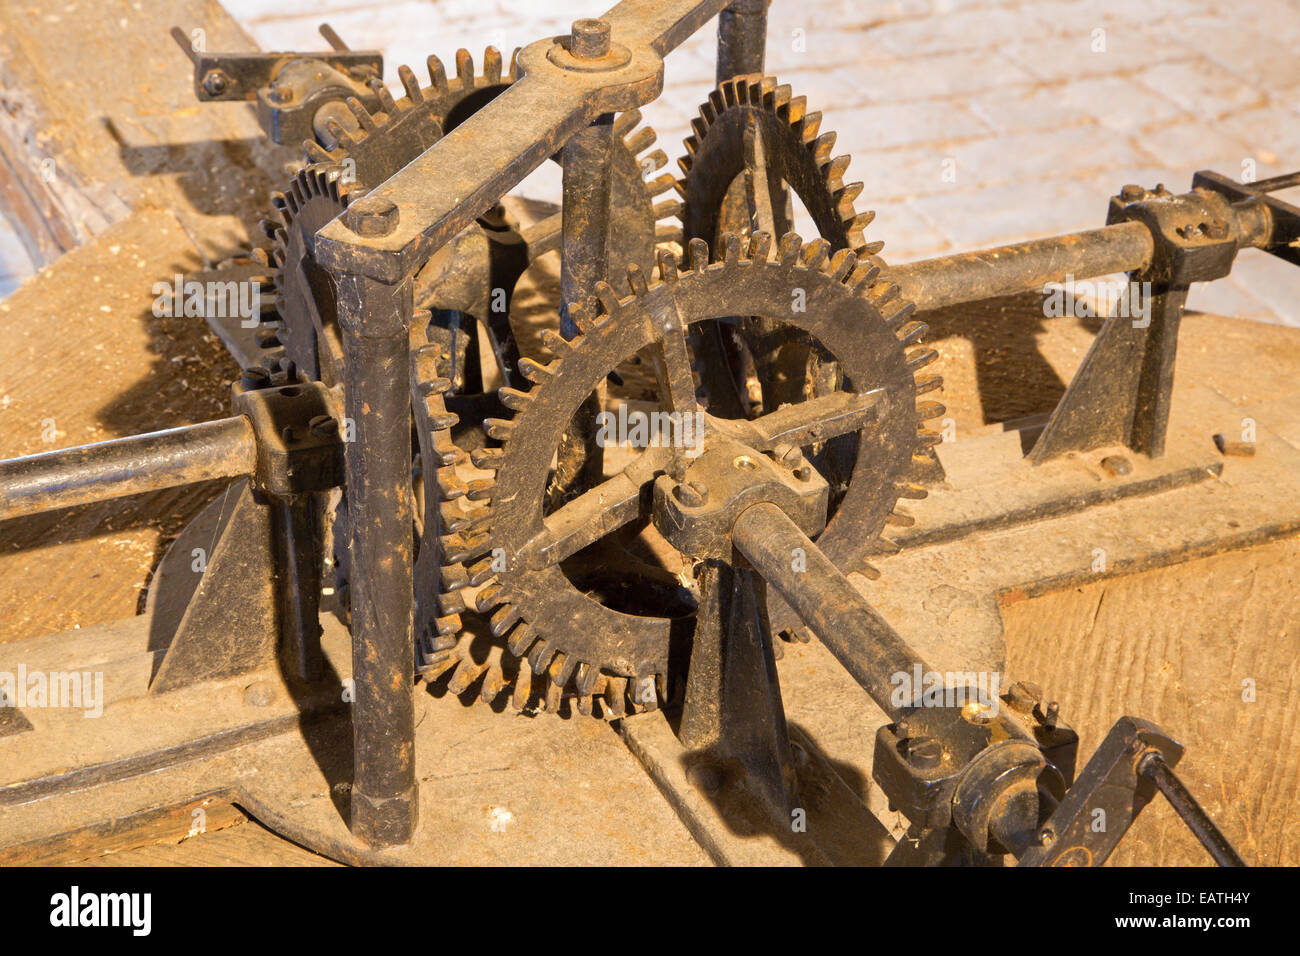 Bratislava - The detail of functionless old gear box int clock-work on the St. Martins cathedral. - Stock Image